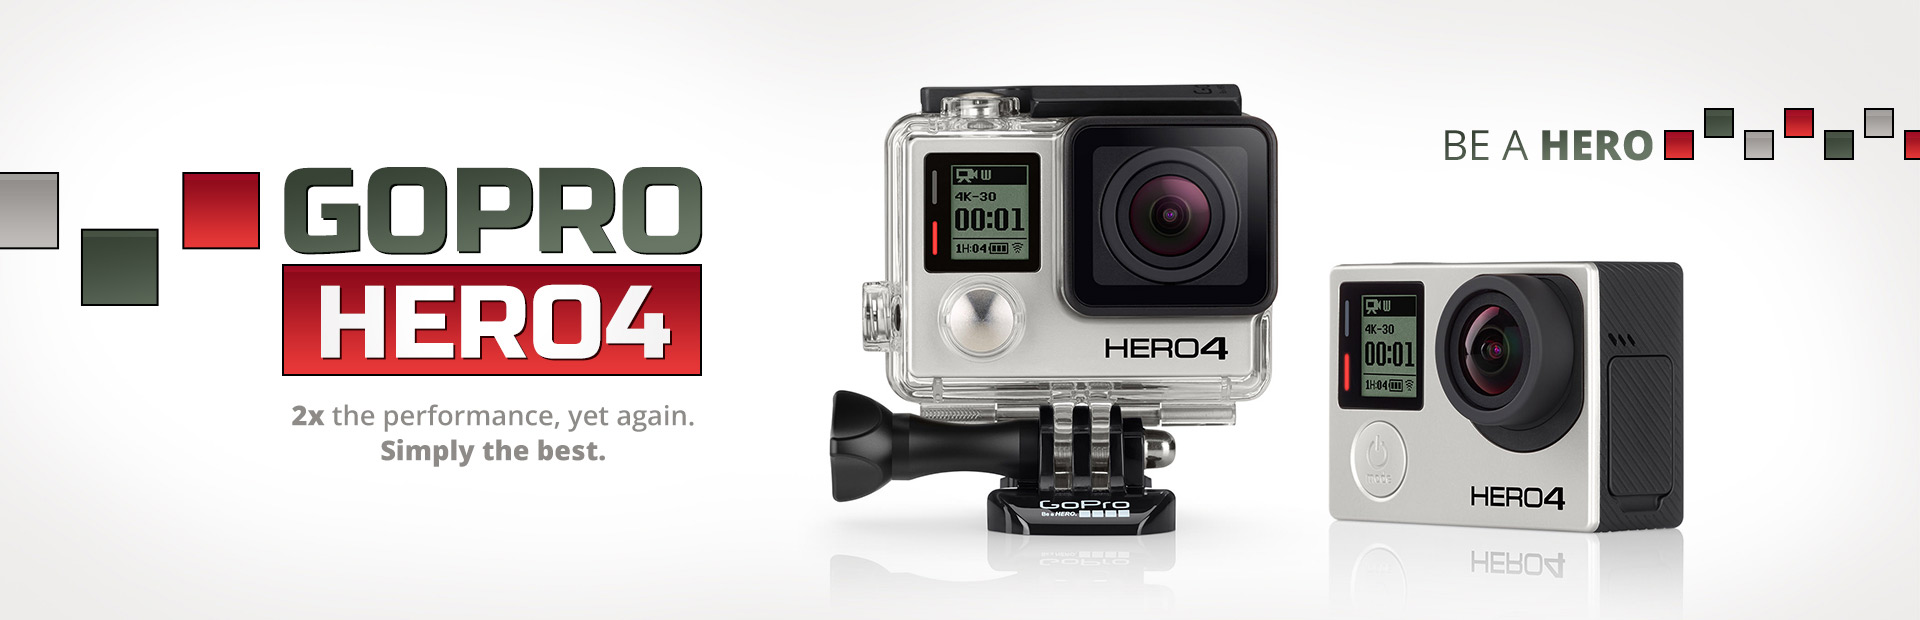 GoPro HERO4: Click here for details.